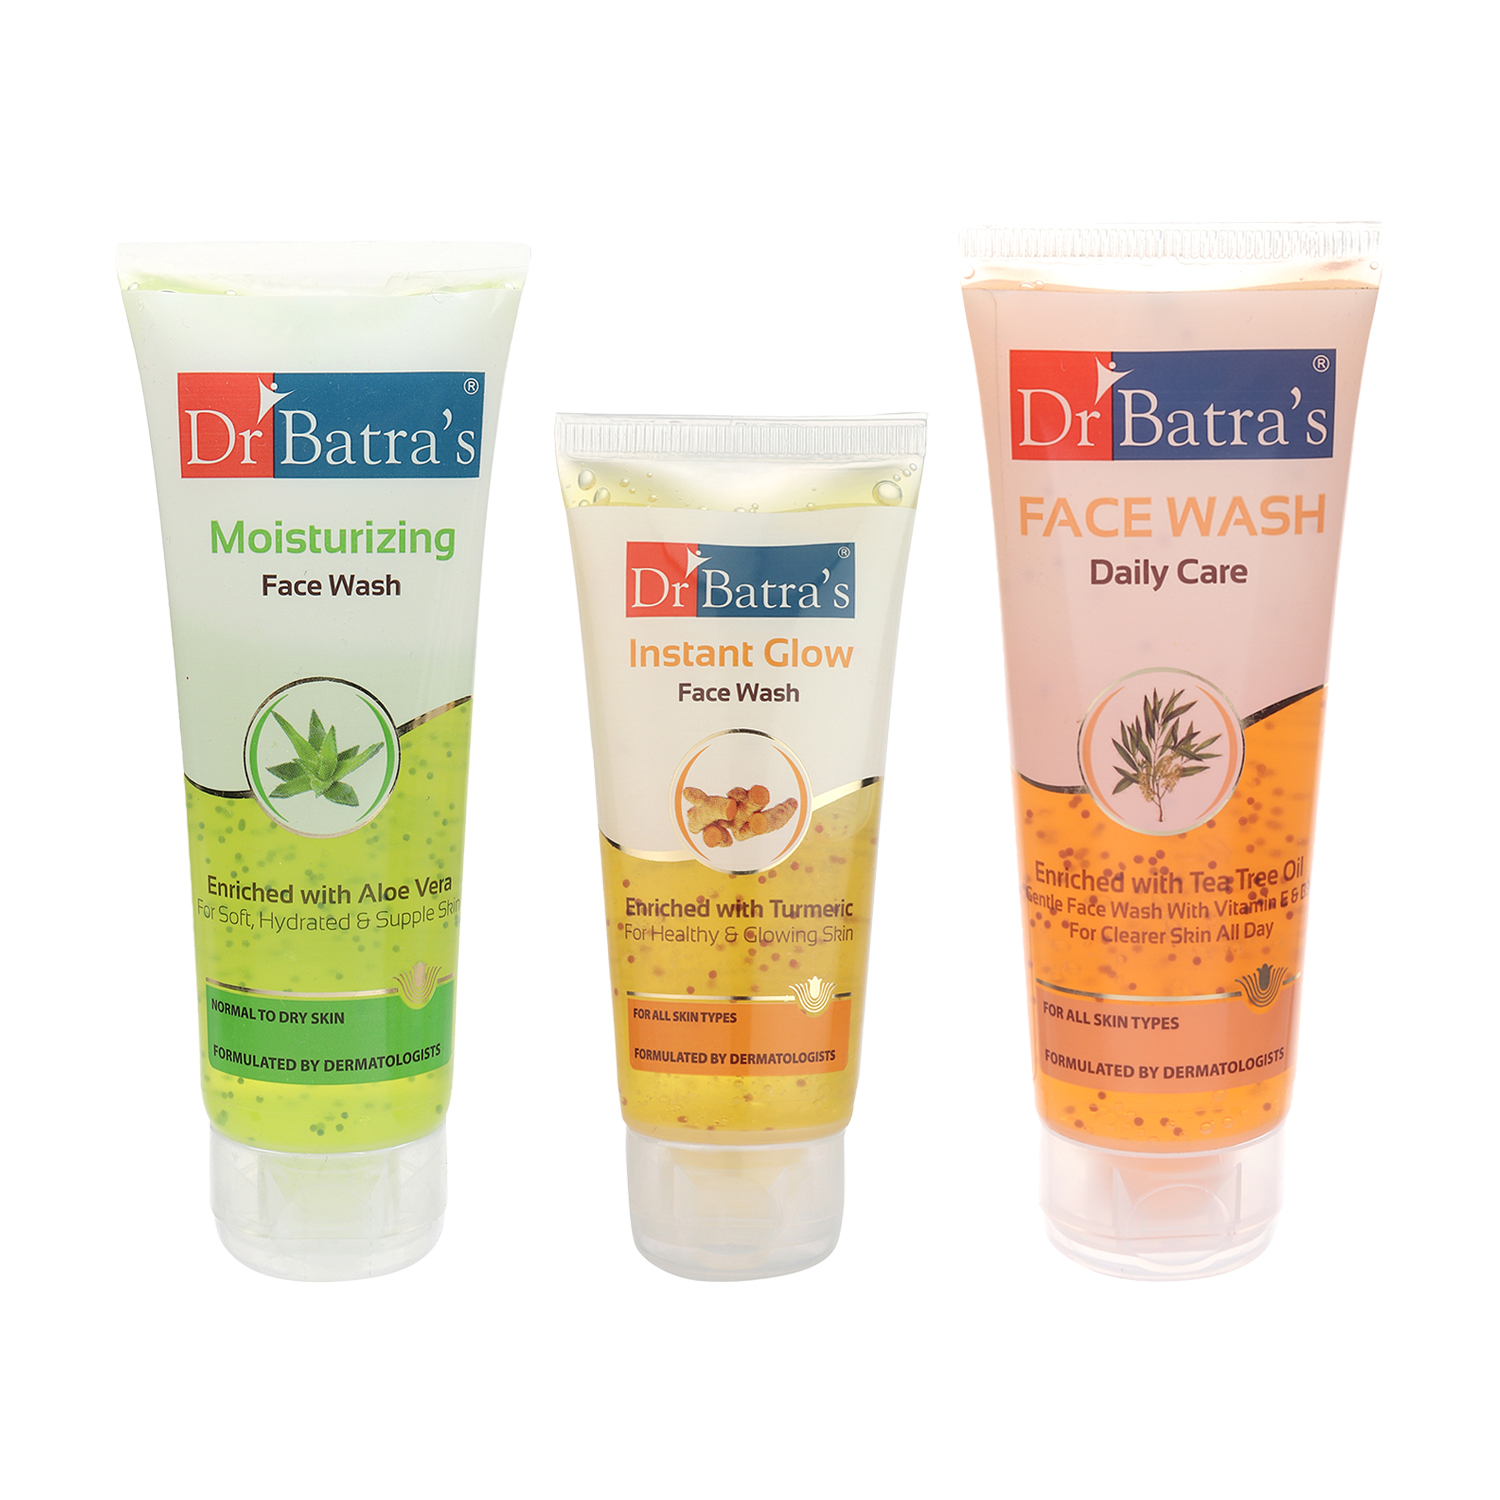 Dr Batra's | Dr Batra's Face Wash Daily Care - 100 gm, Face Wash Moisturizing - 100 gm and Face Wash Instant Glow - 50 gm ( Pack of 3 for Men and Women)